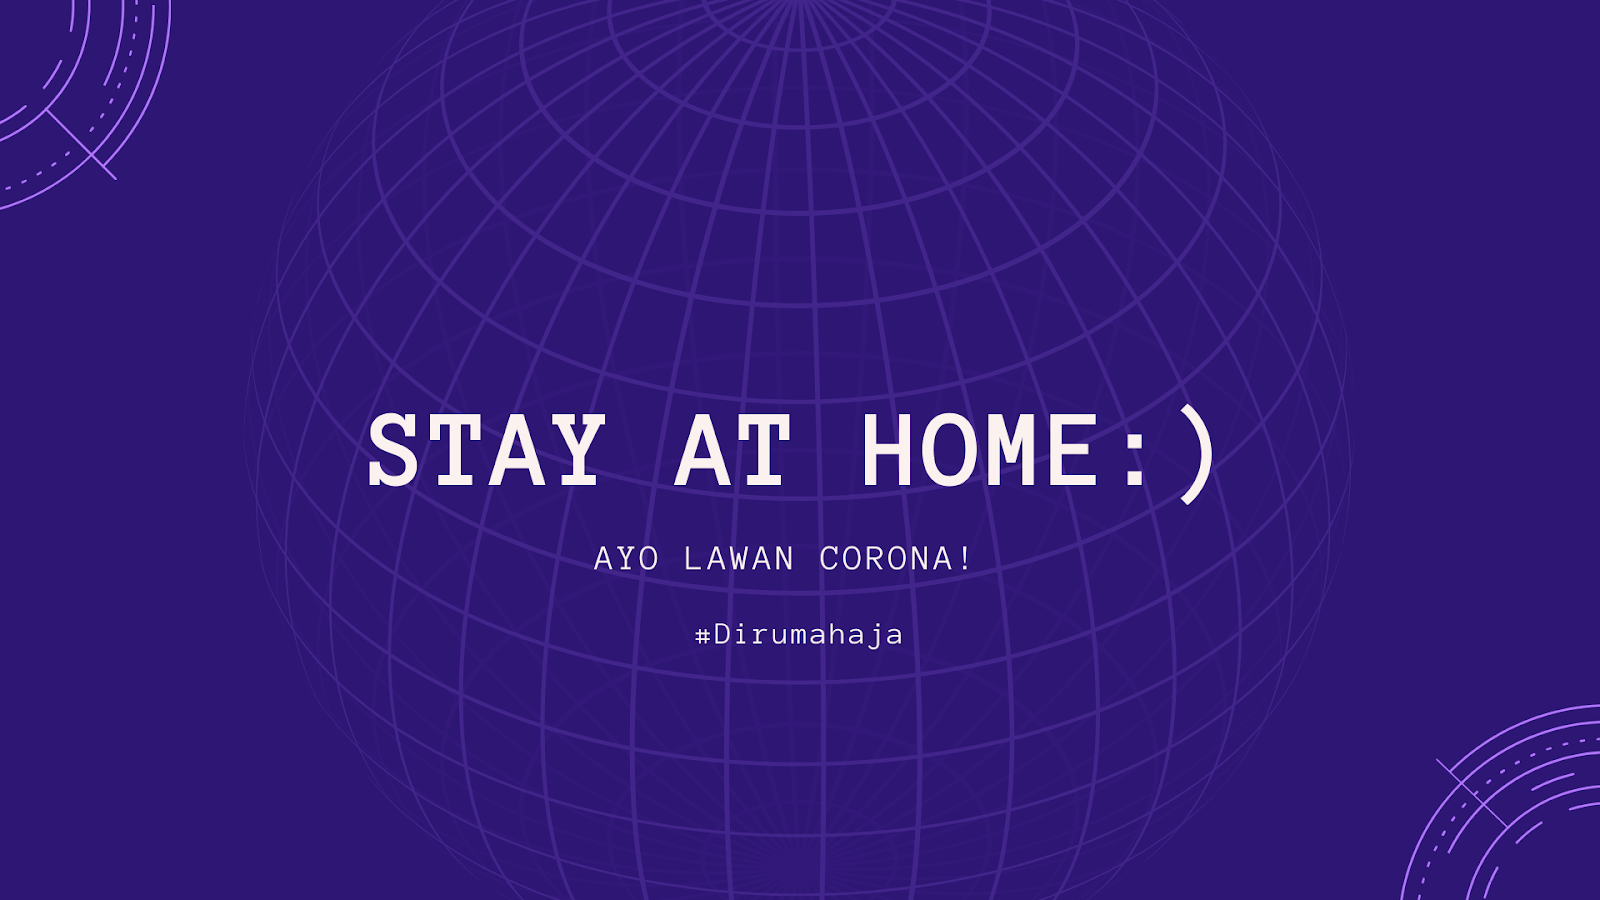 Stay At Home, Ayo Lawan Corona! #Dirumahaja